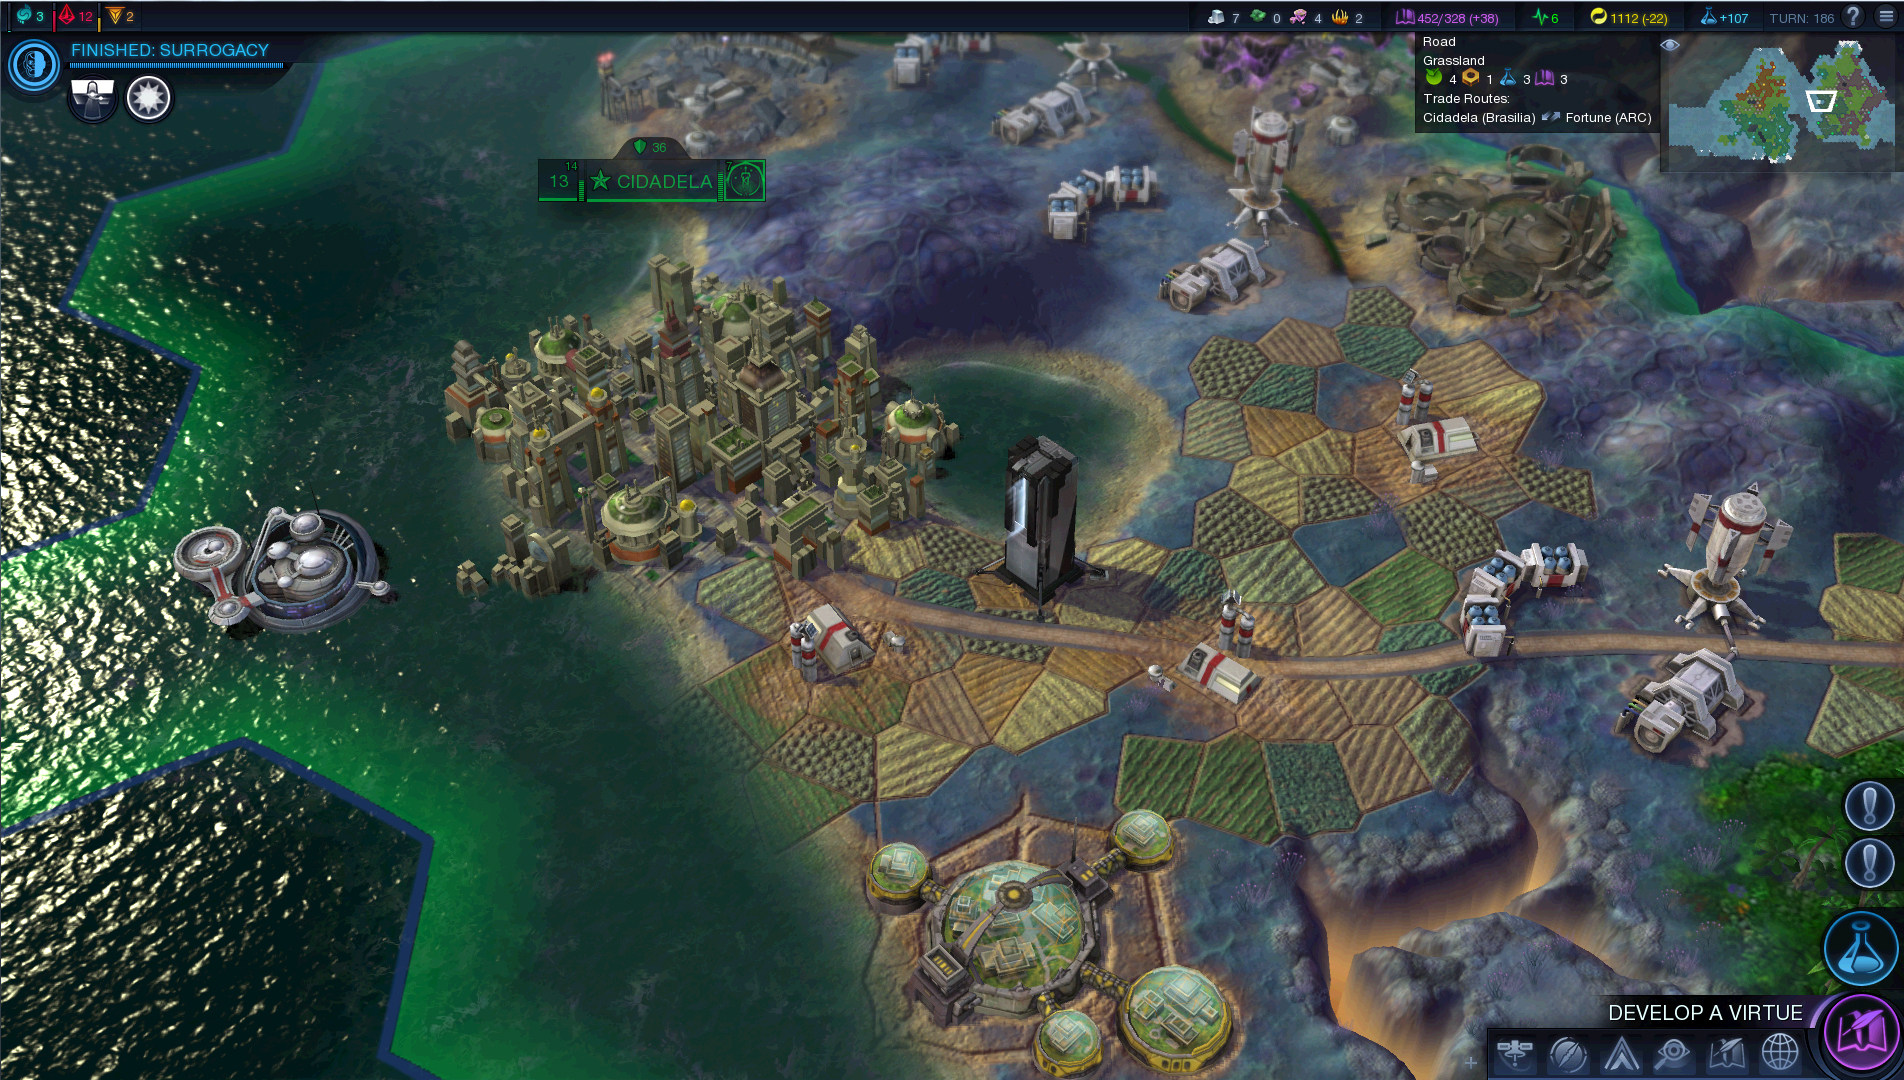 A deeper, longer look at Civilization: Beyond Earth